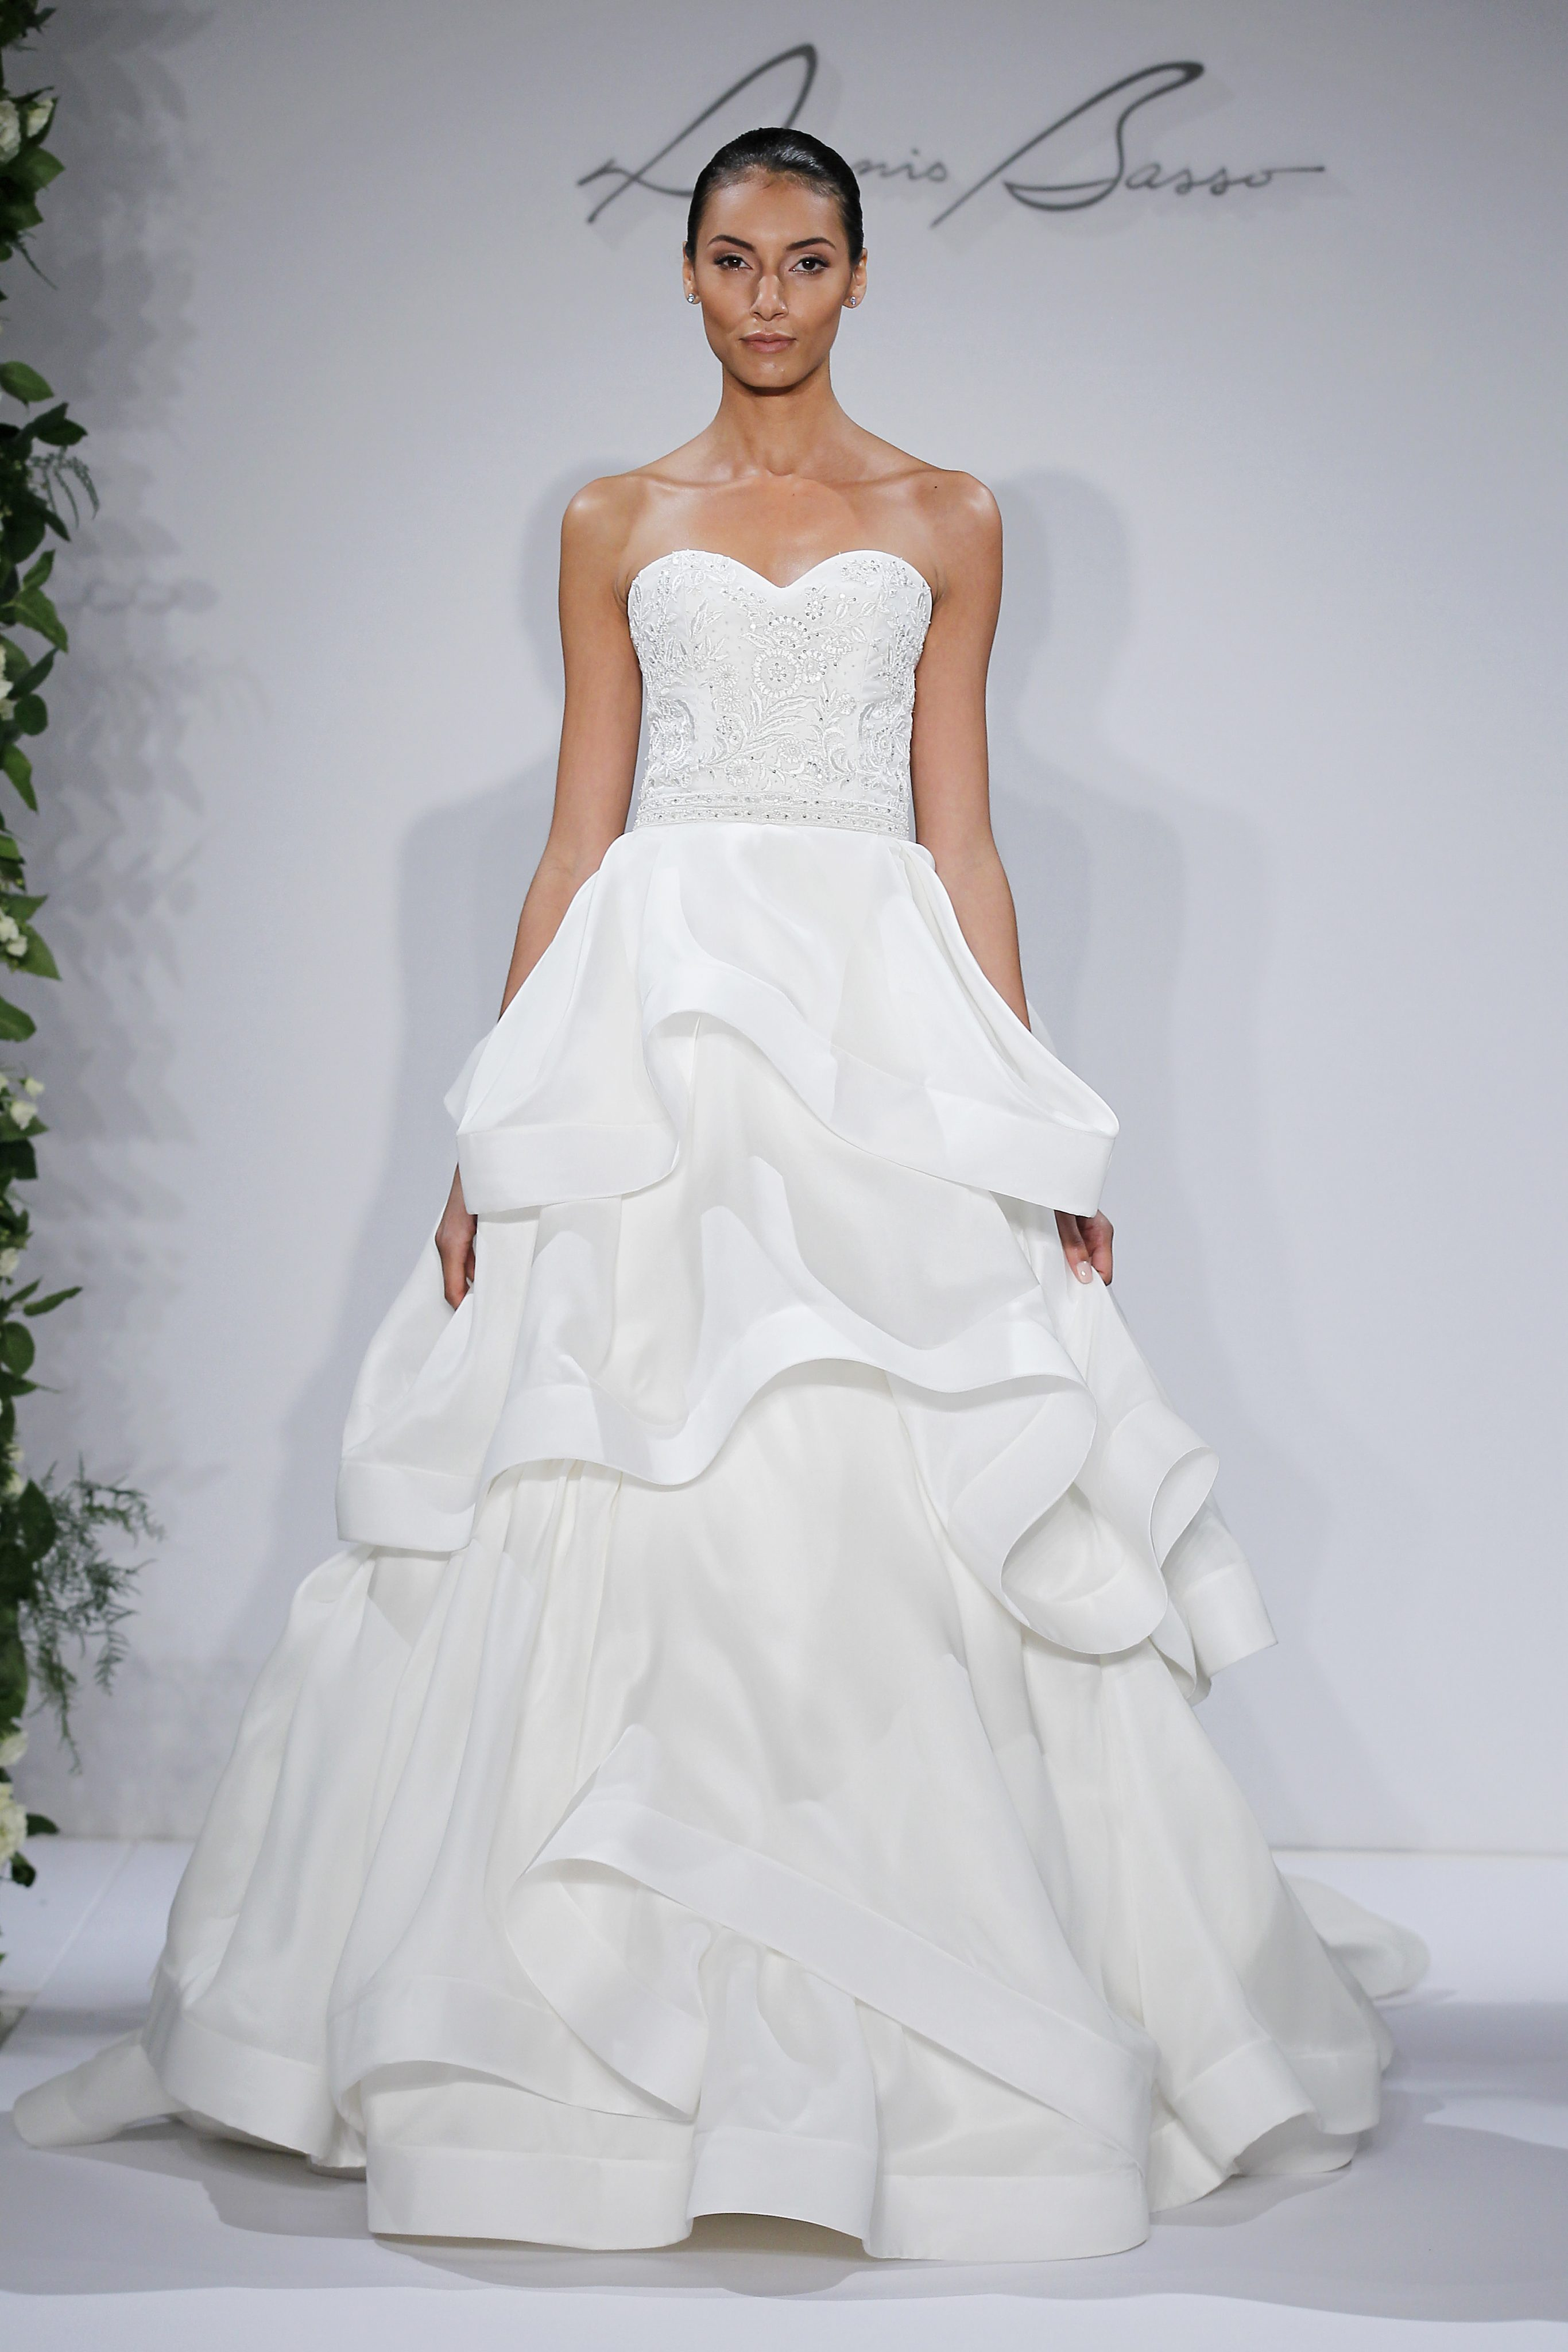 Dennis Basso Ball Gown Wedding Dress | Kleinfeld Bridal